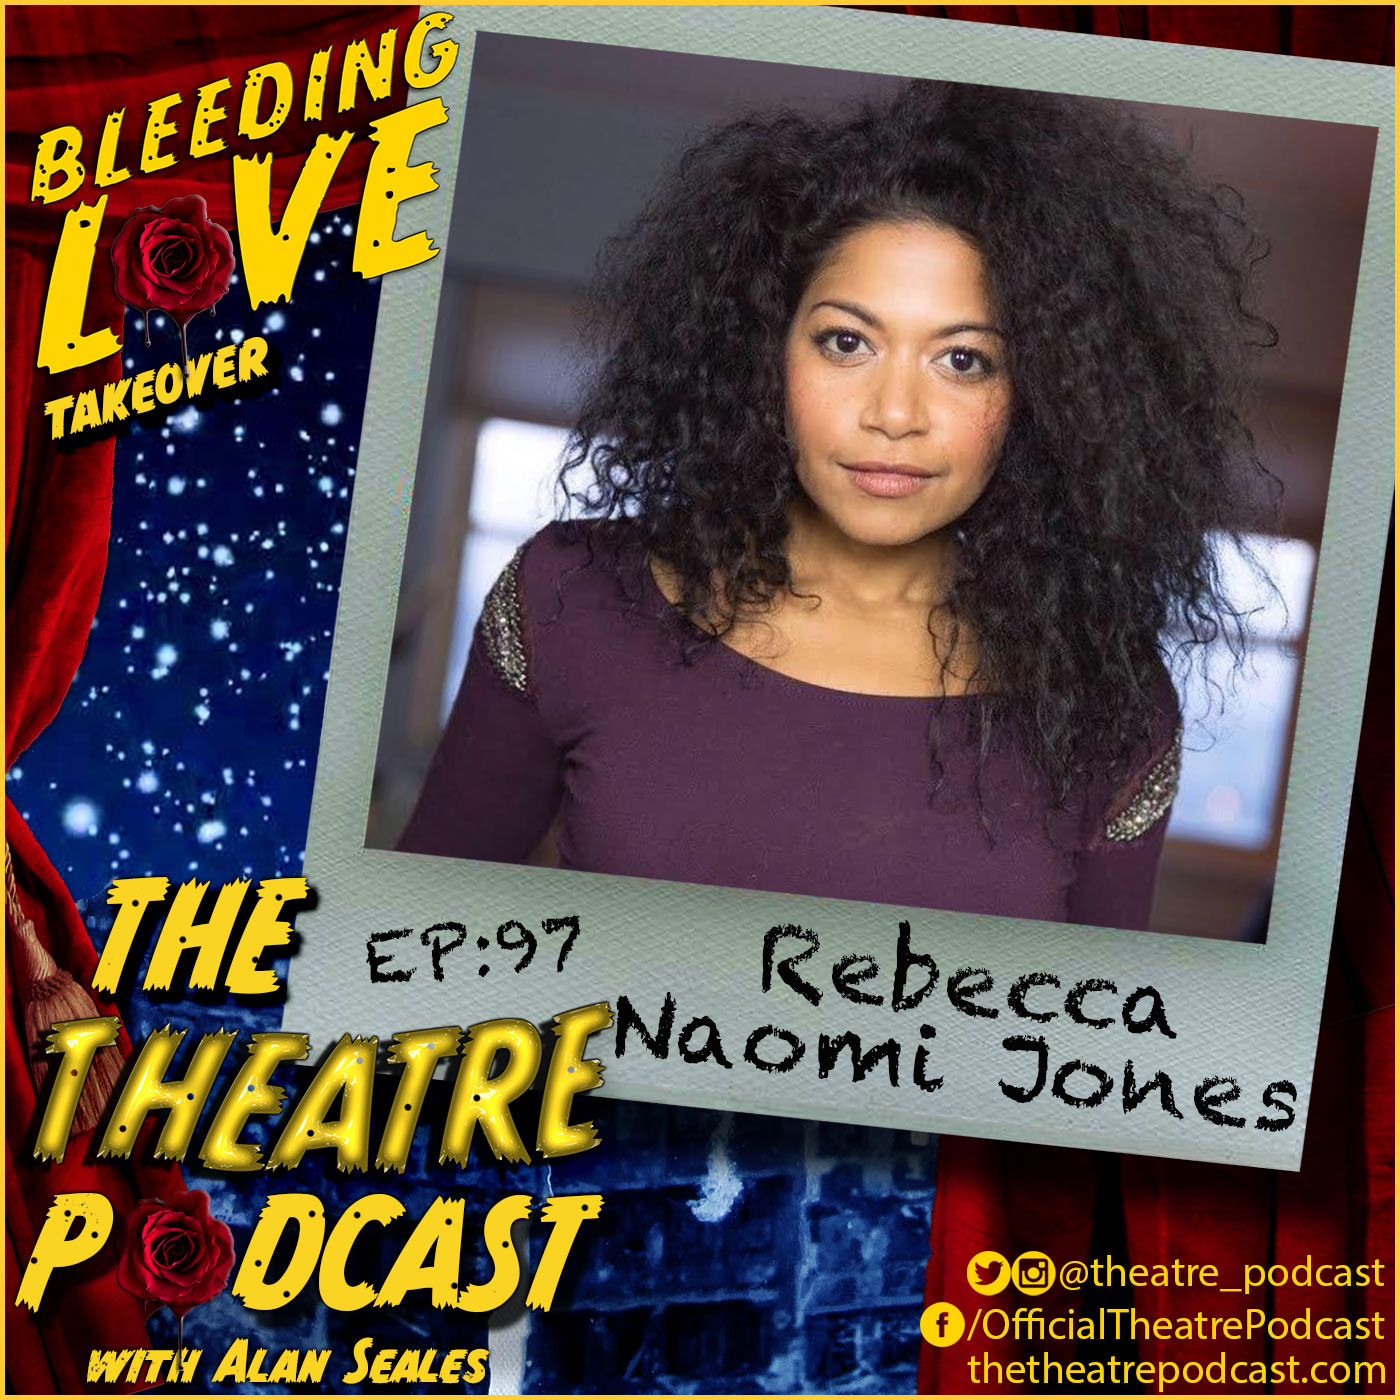 The Theatre Podcast - Ep97 - Rebecca Naomi Jones: Bleeding Love, Oklahoma!, American Idiot, Hedwig